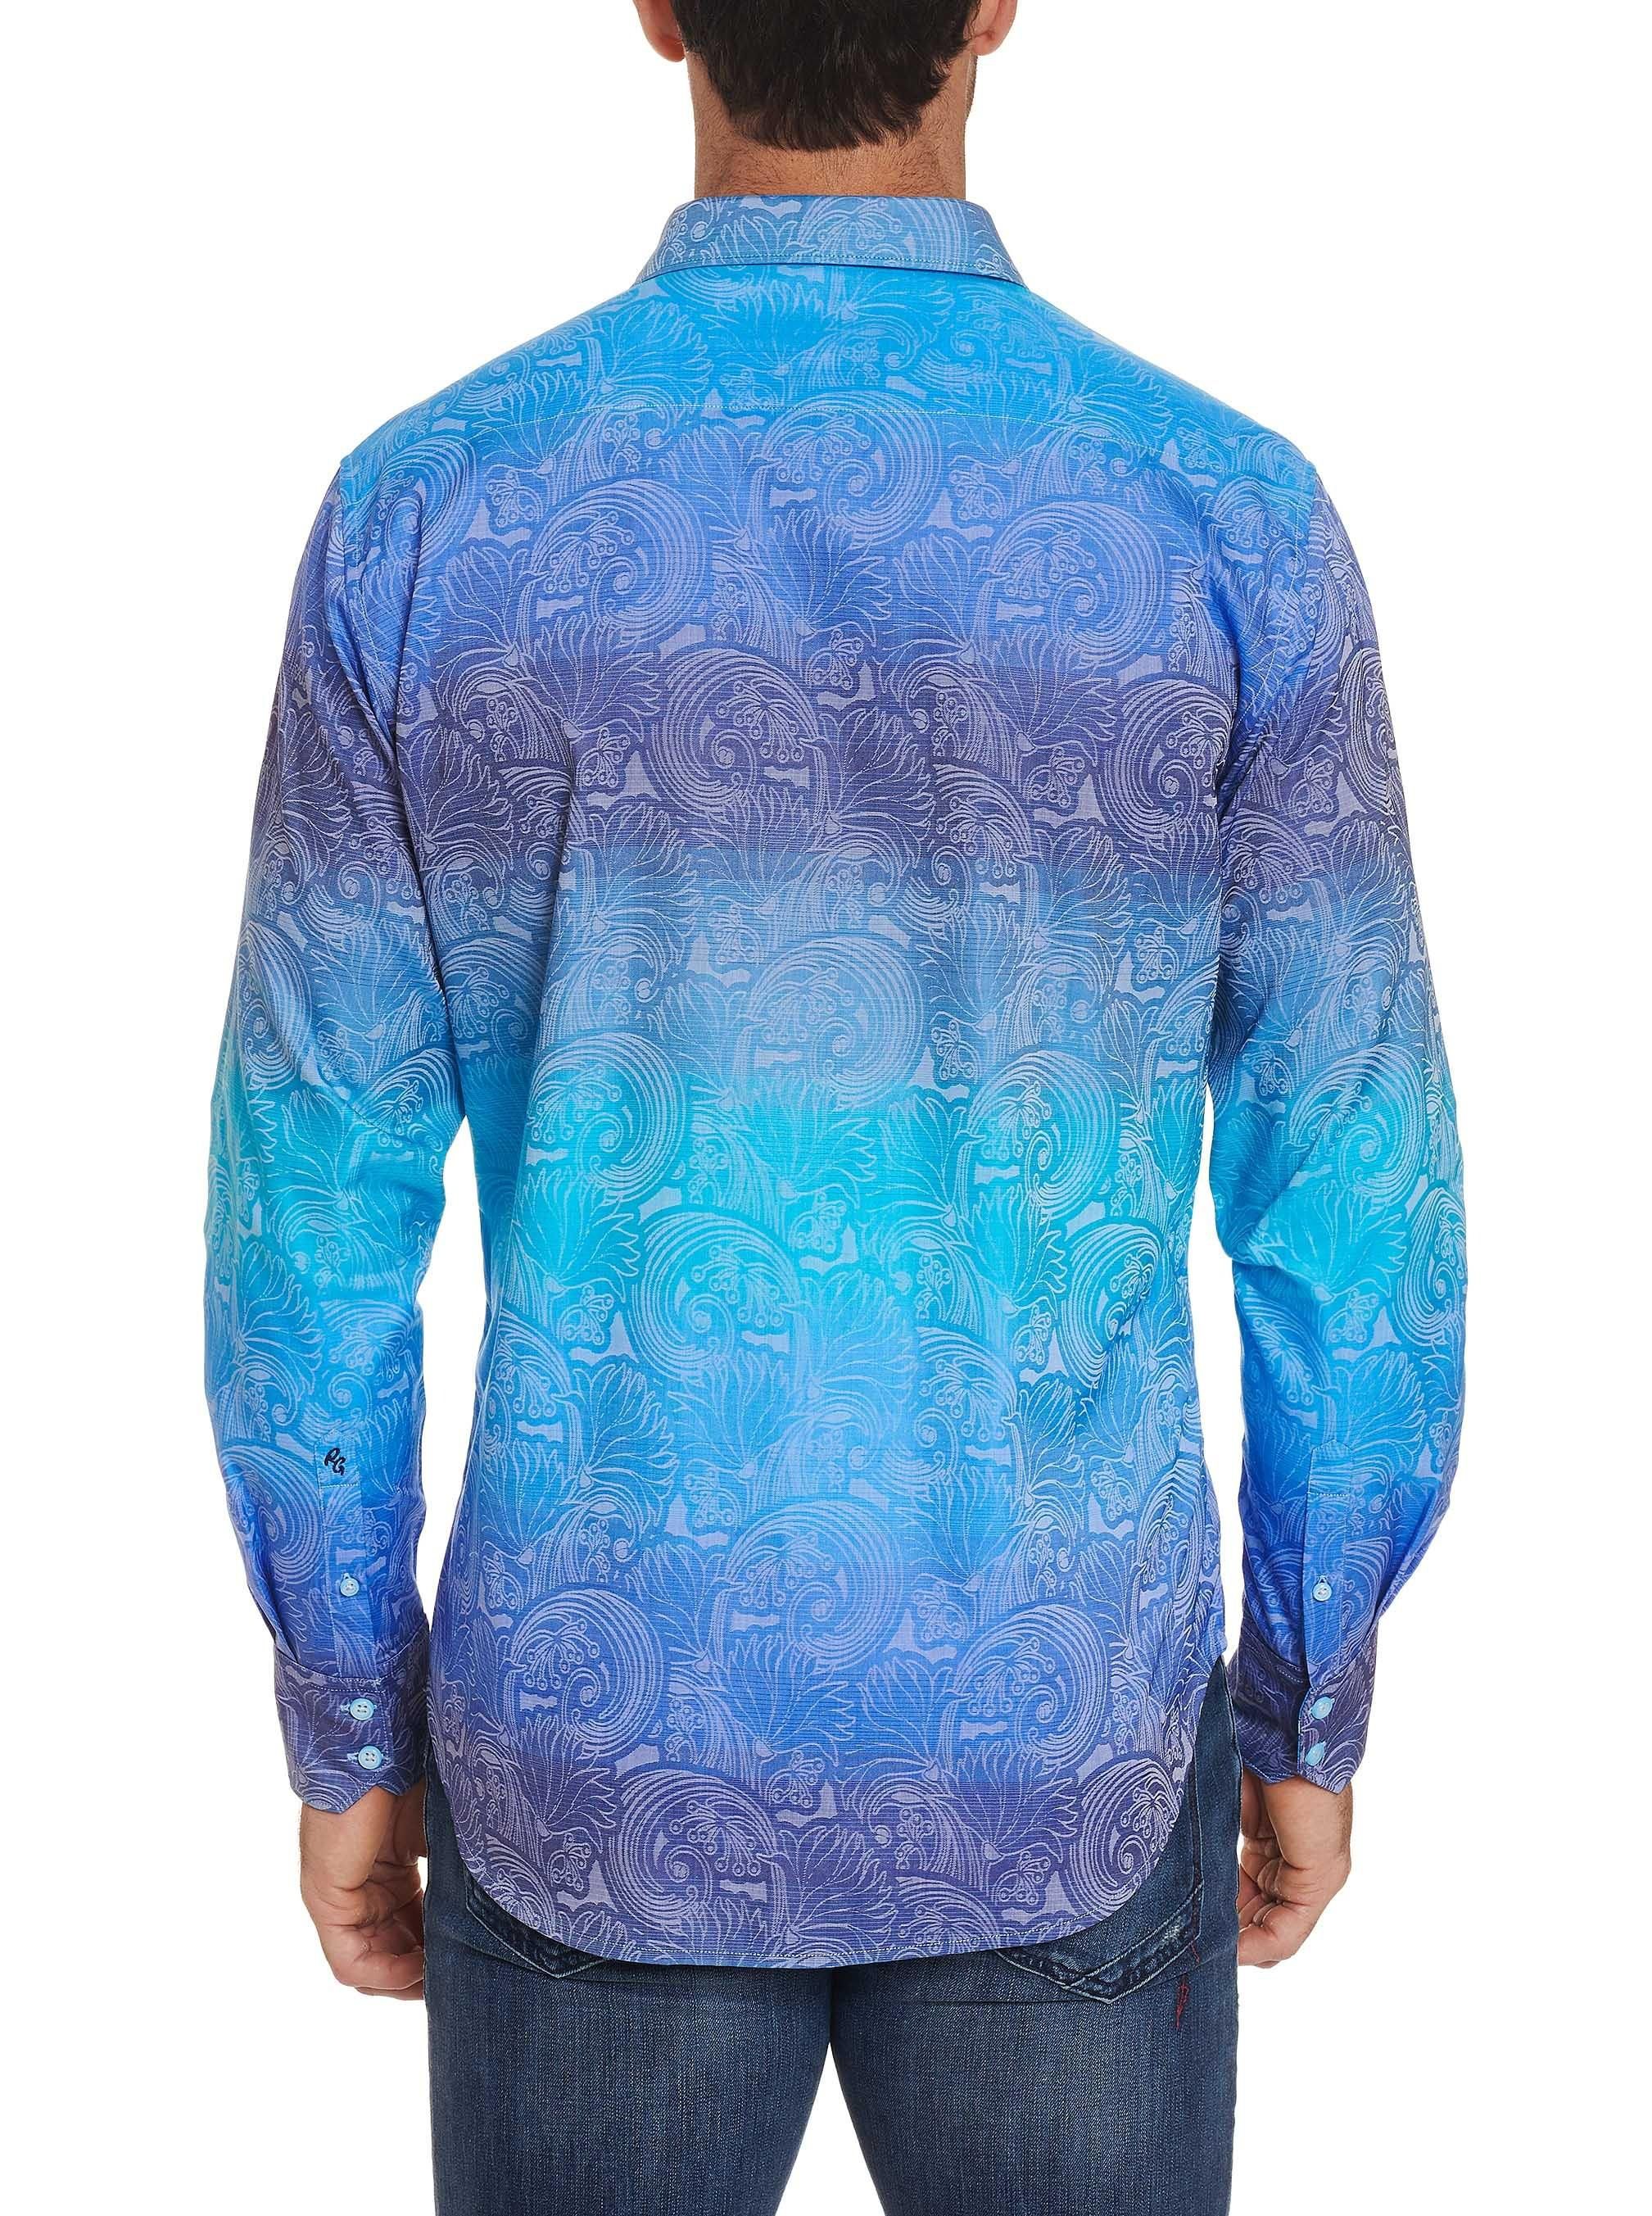 NEW Robert Graham $268 HARDWICKE Ombre Floral Jacquard Classic Fit Sports Shirt